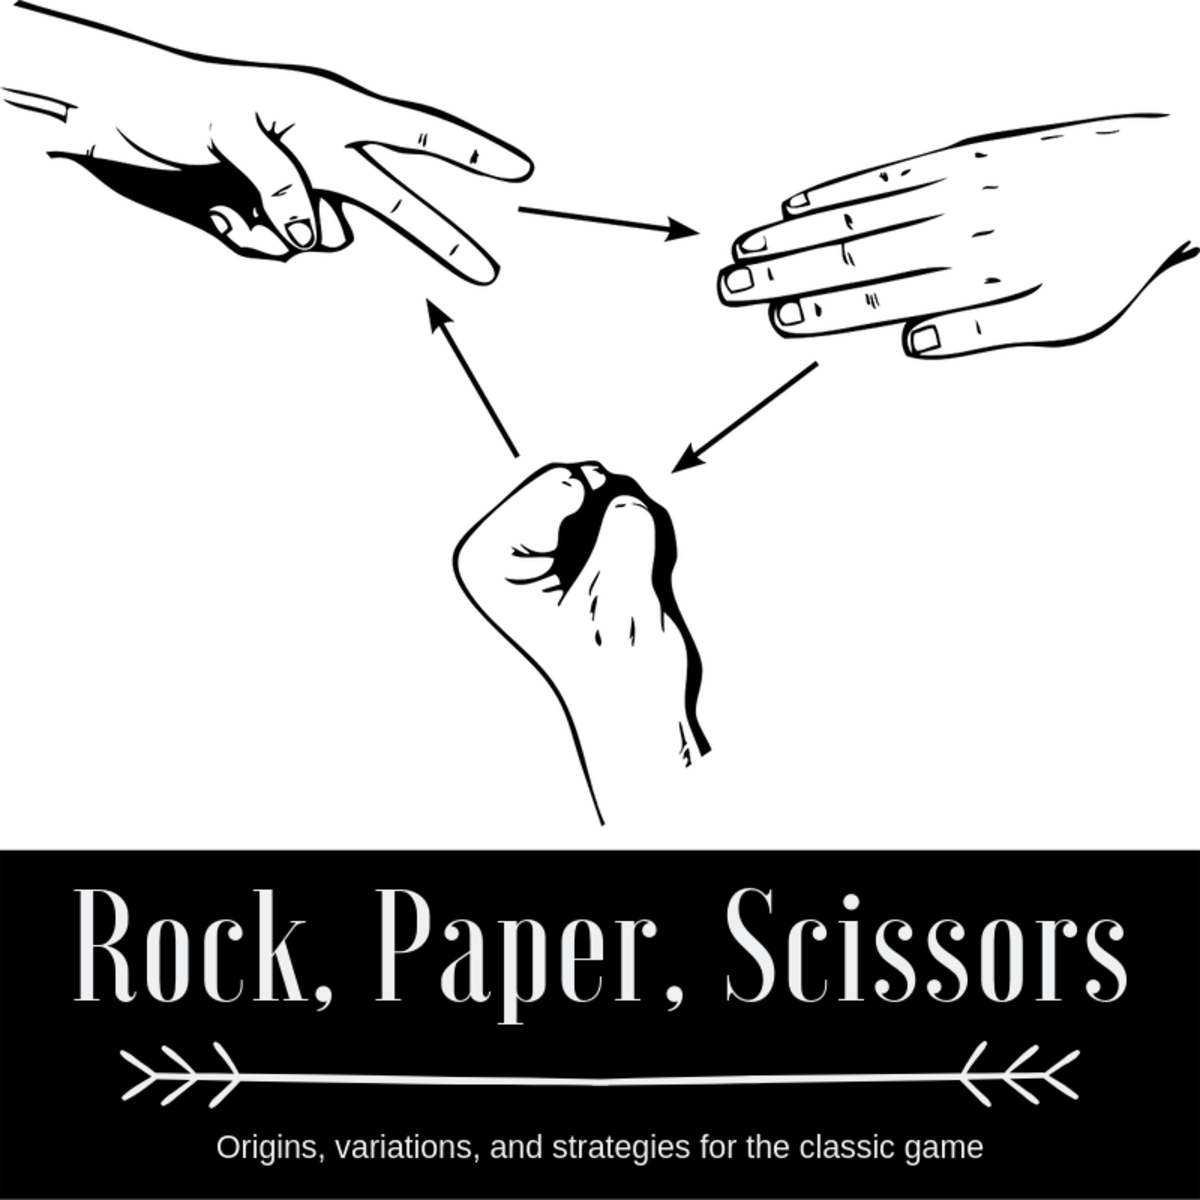 Rock, Paper, Scissors: Origins, Variations, and Strategies